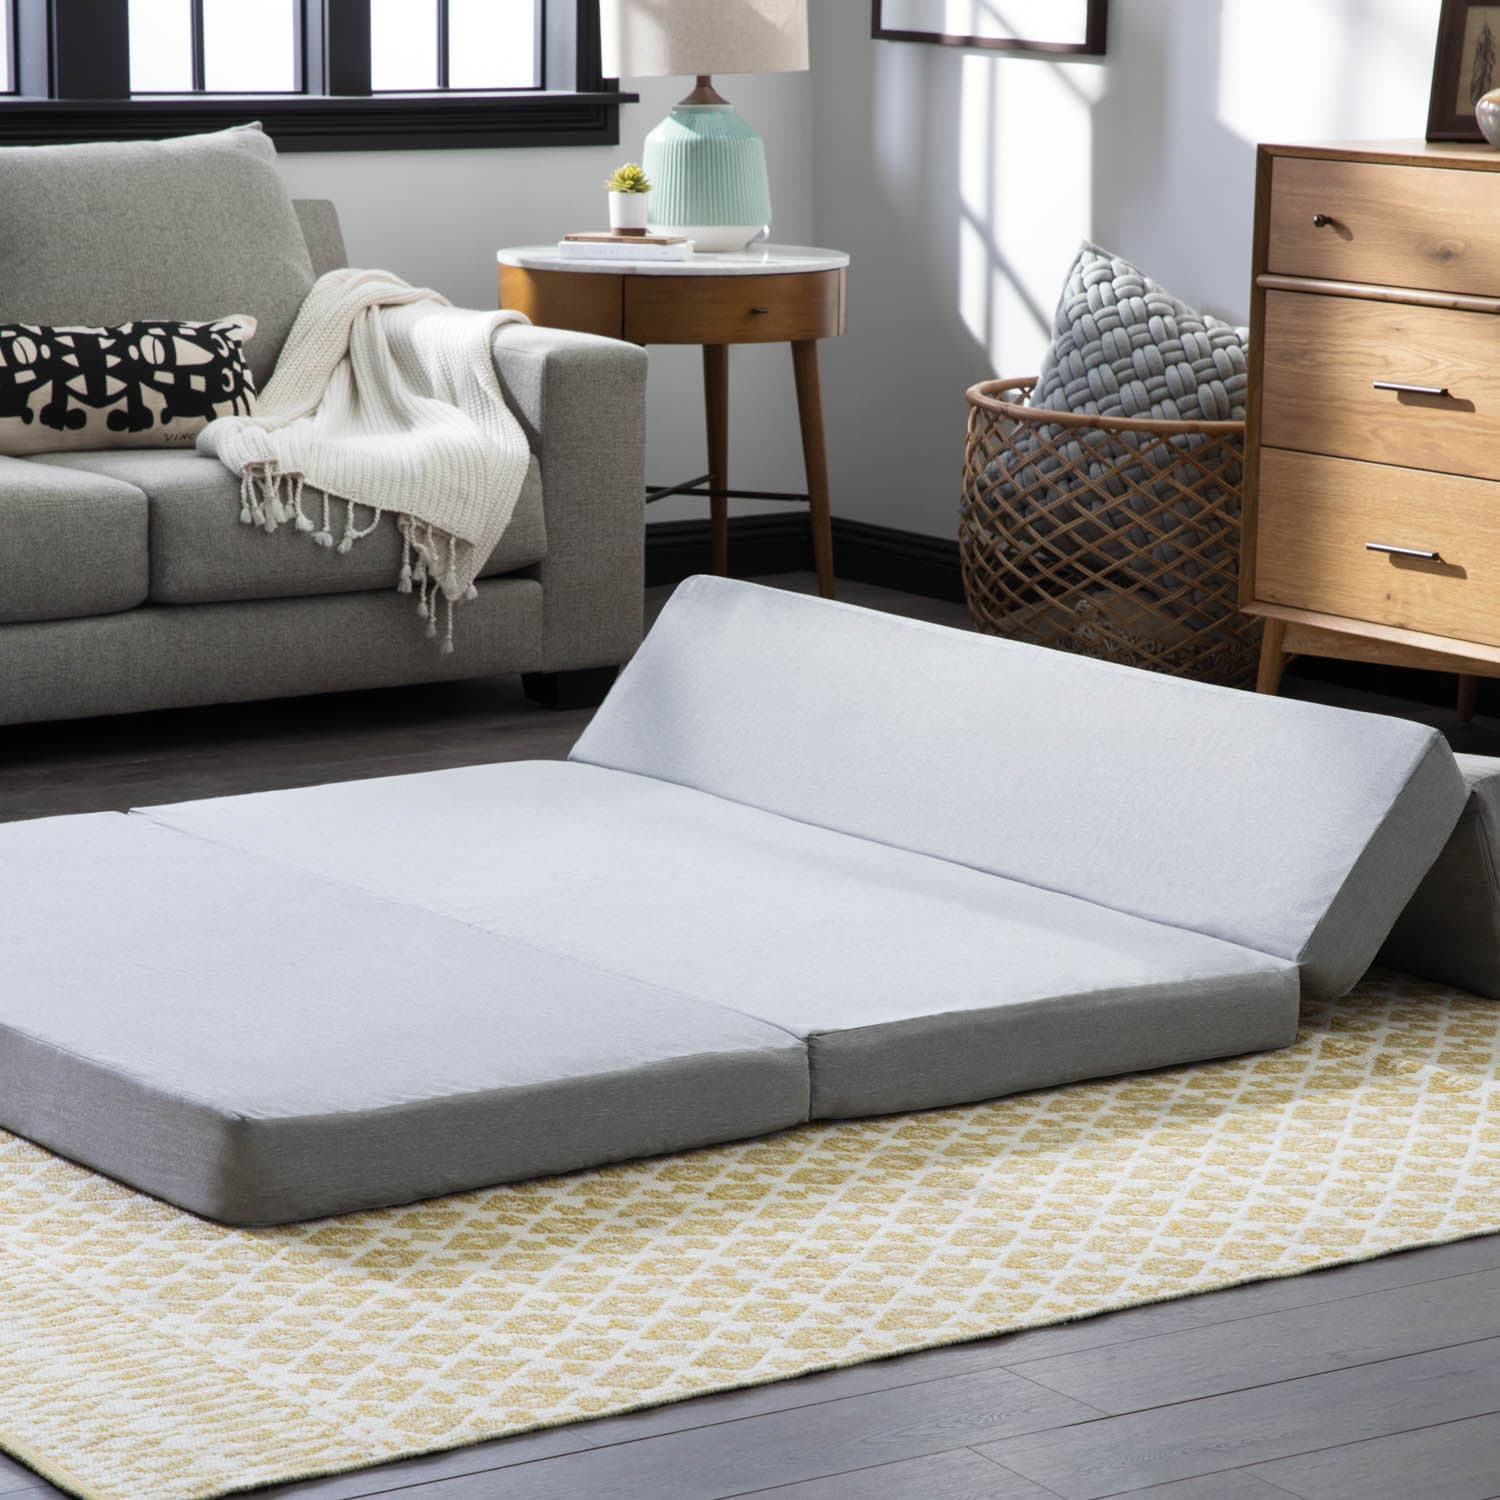 Mattress For Sofa Lucid Folding Mattress Sofa With